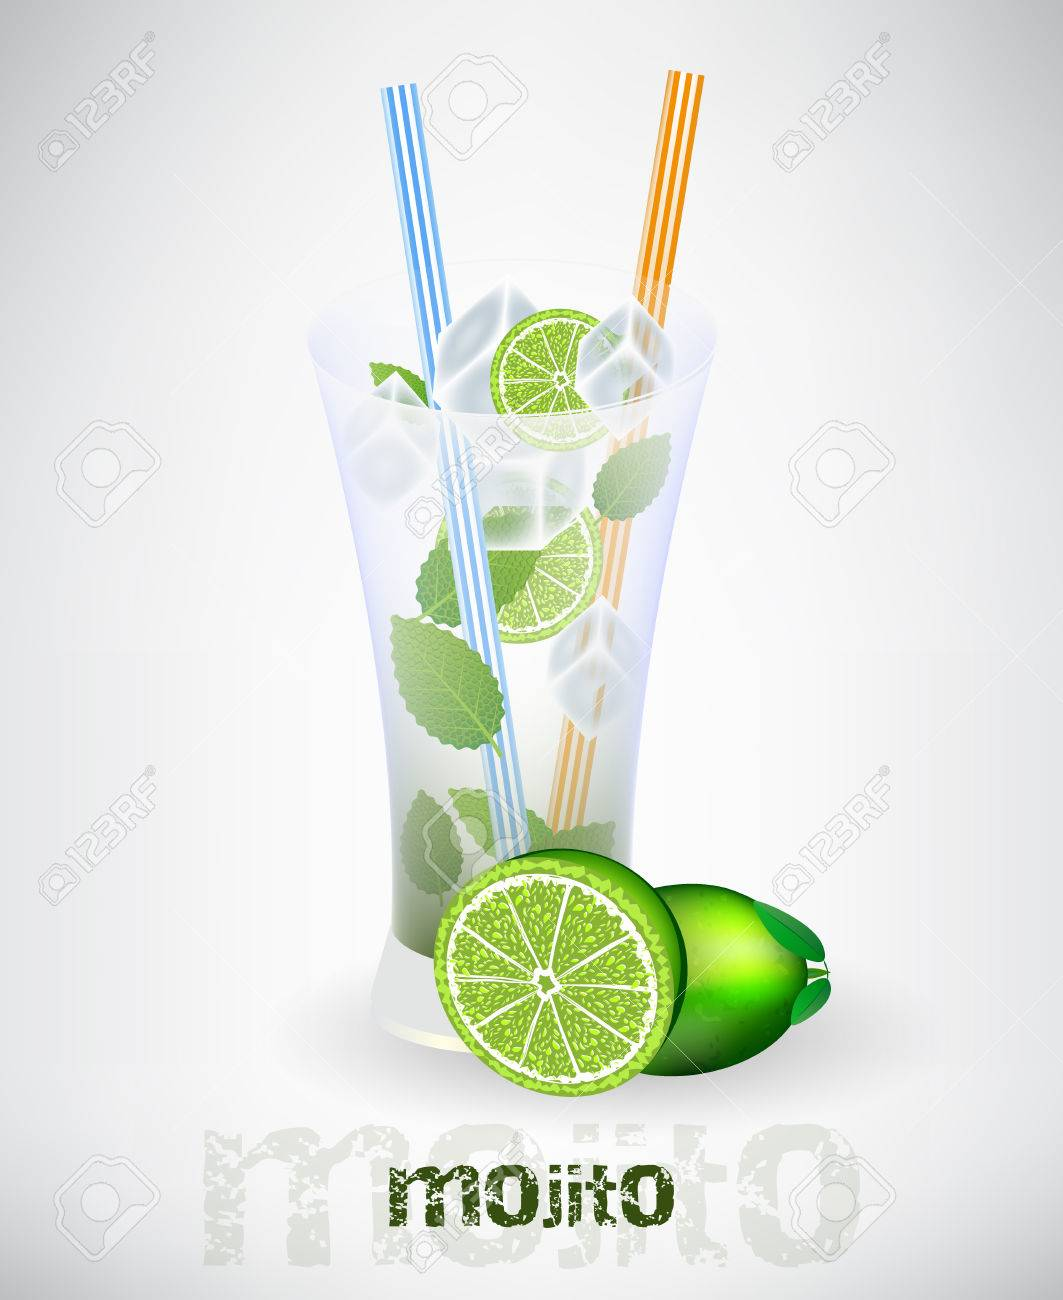 Mojito Glas Glass Of Mojito And Drinking Strew With Lime And Ice Cubes